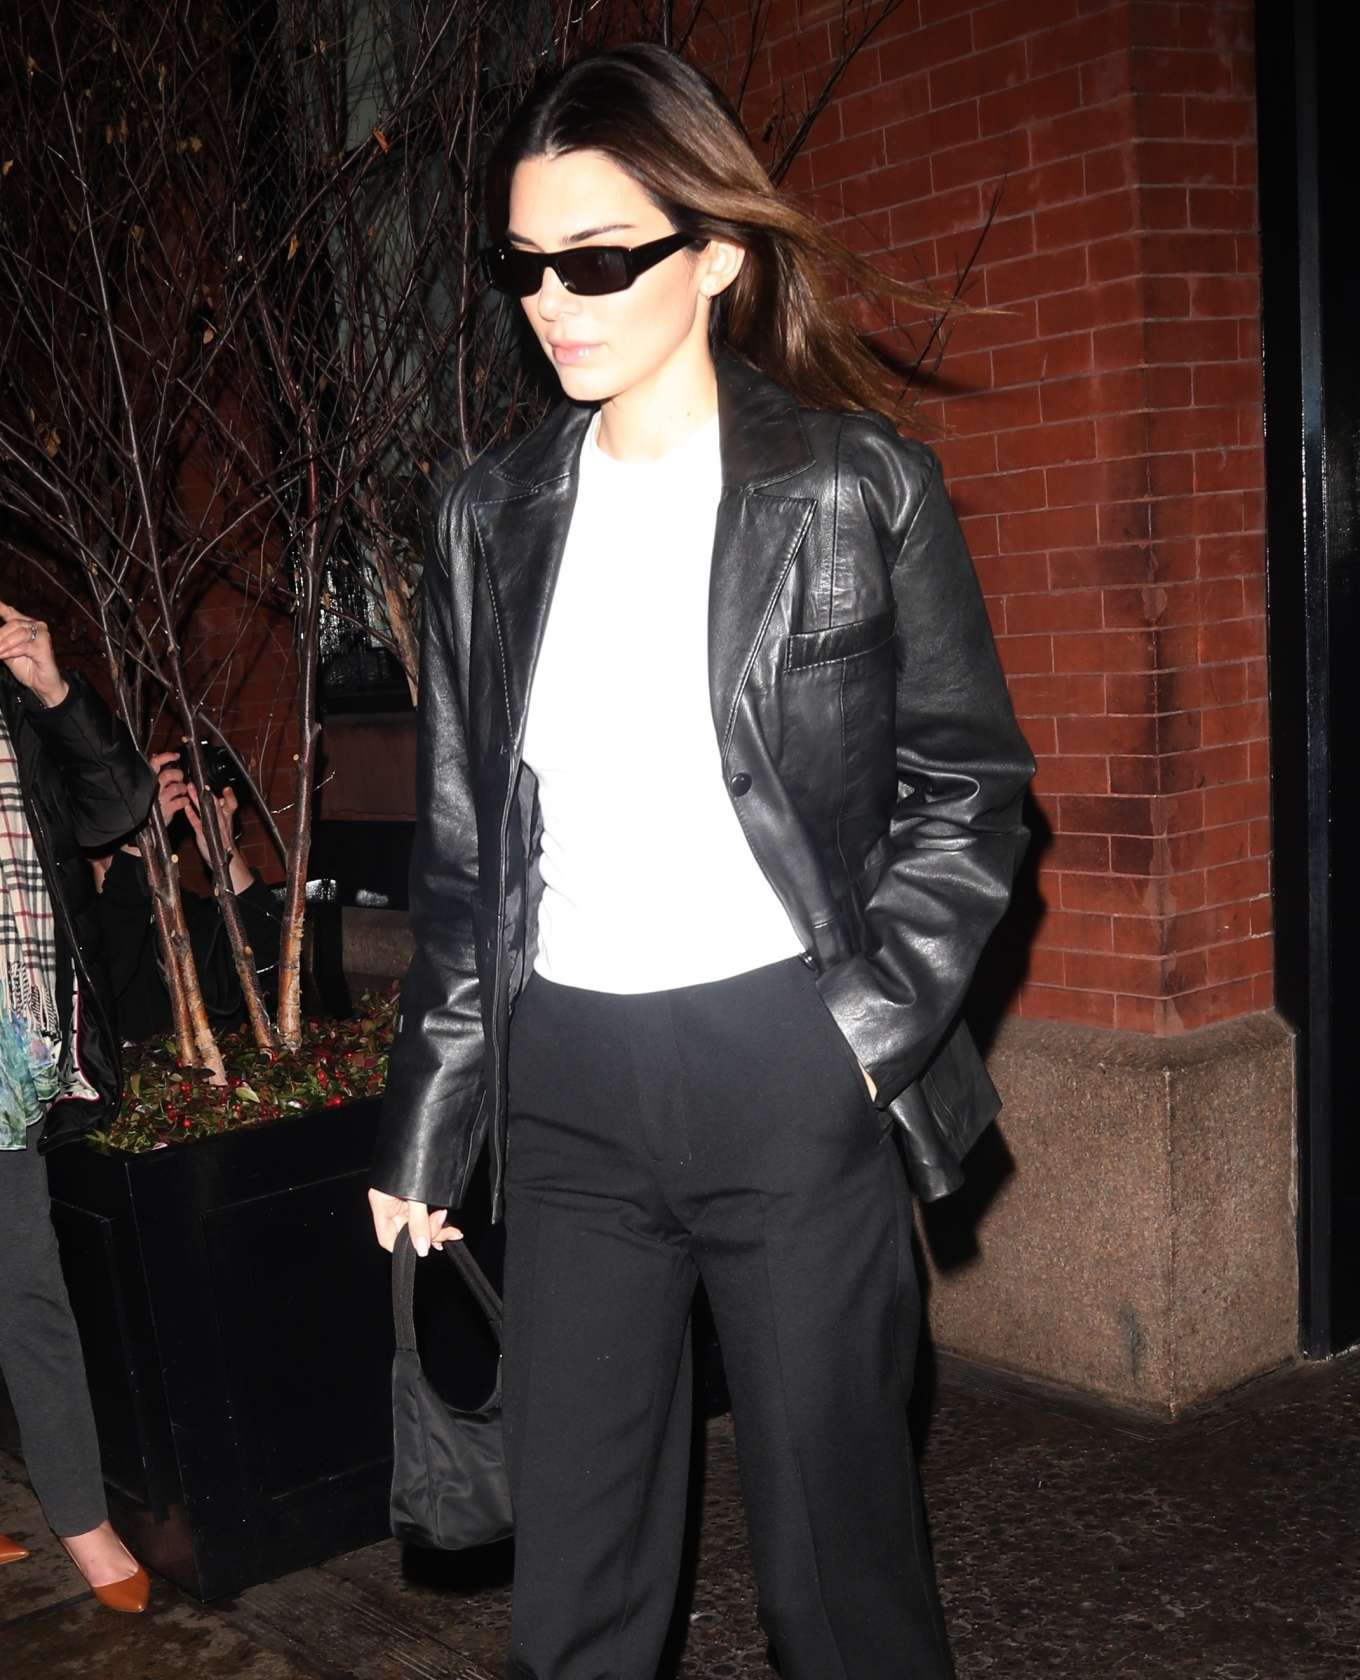 Kendall Jenner, black jacket, leather, white canvas shoes, white tee, front zip, hip length, full sleeves, peak lapel collar, relaxed fit, black Prada purse, black pants, black sunglasses. Kendall Jenner donning a relaxed fit black leather jacket with full sleeves and peak lapel collar